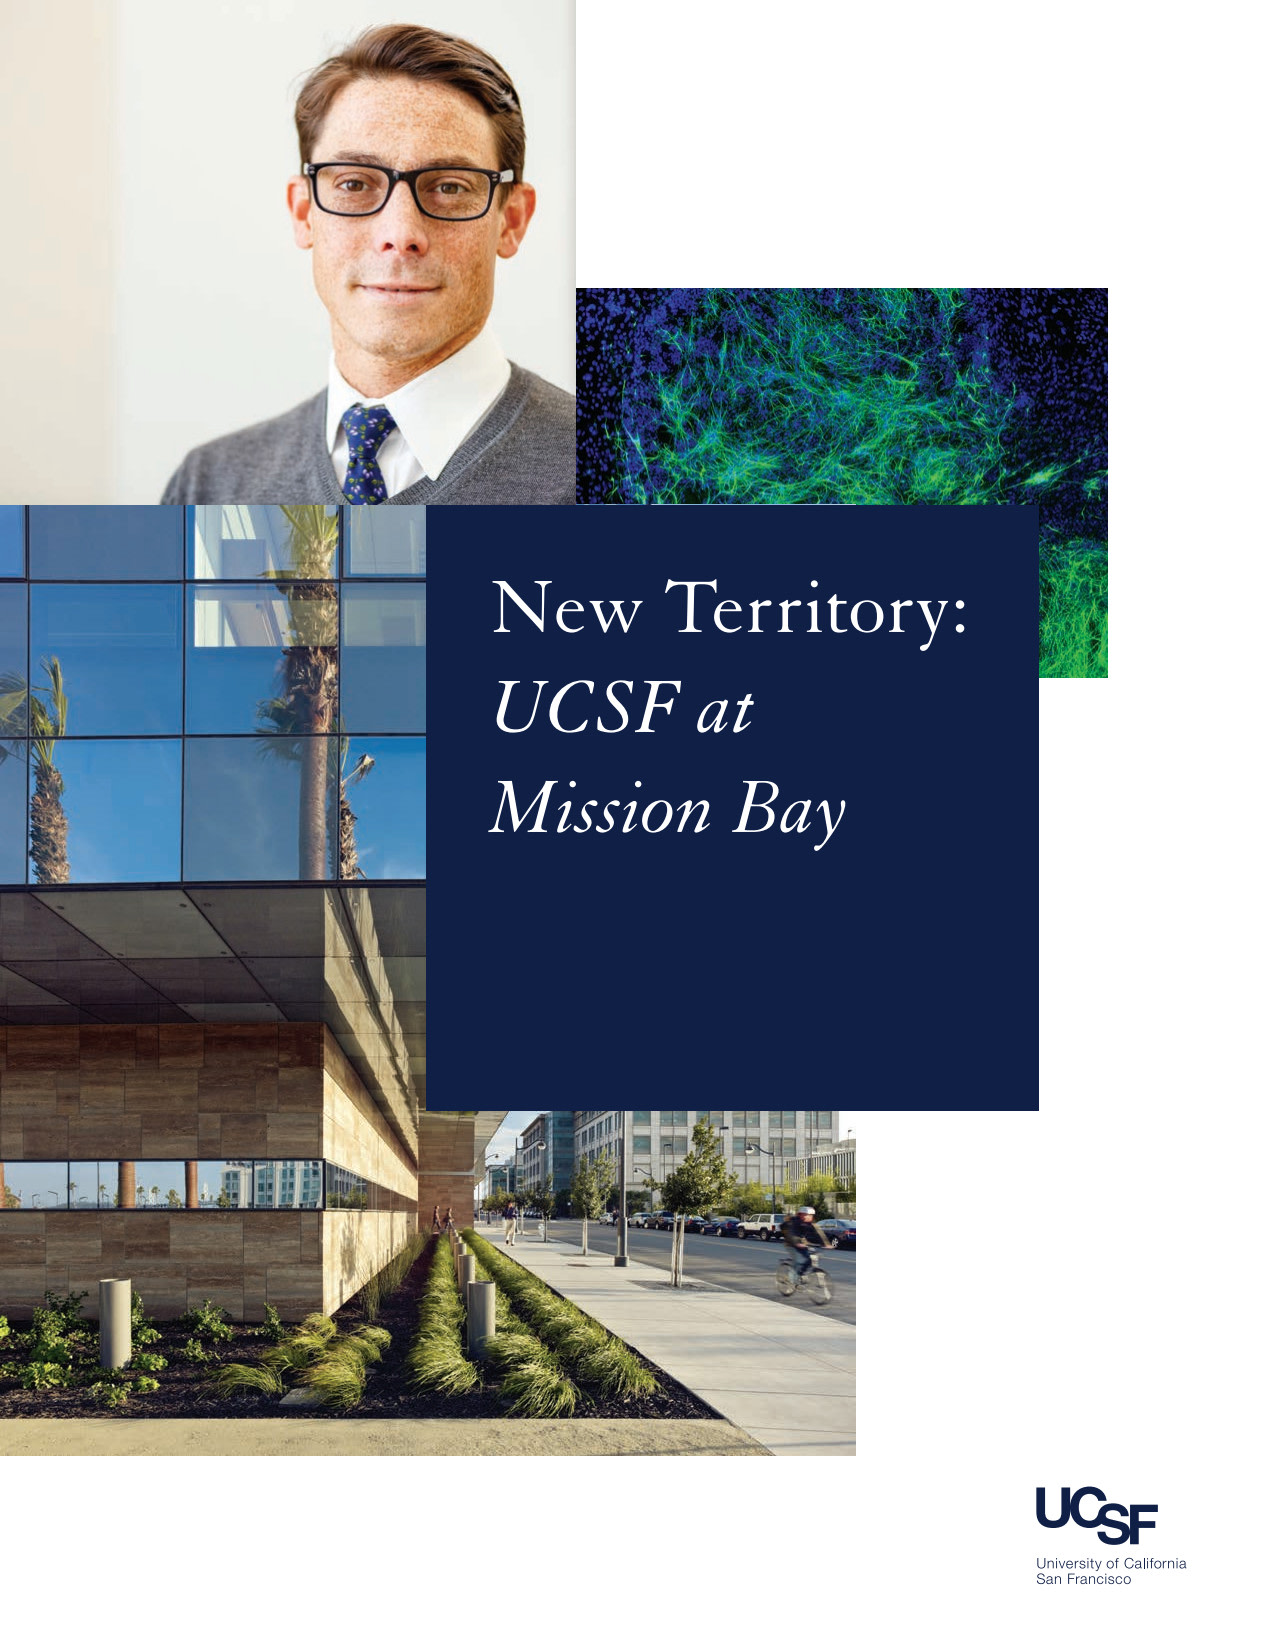 Mission Bay Case Statement/Fundraising Proposal